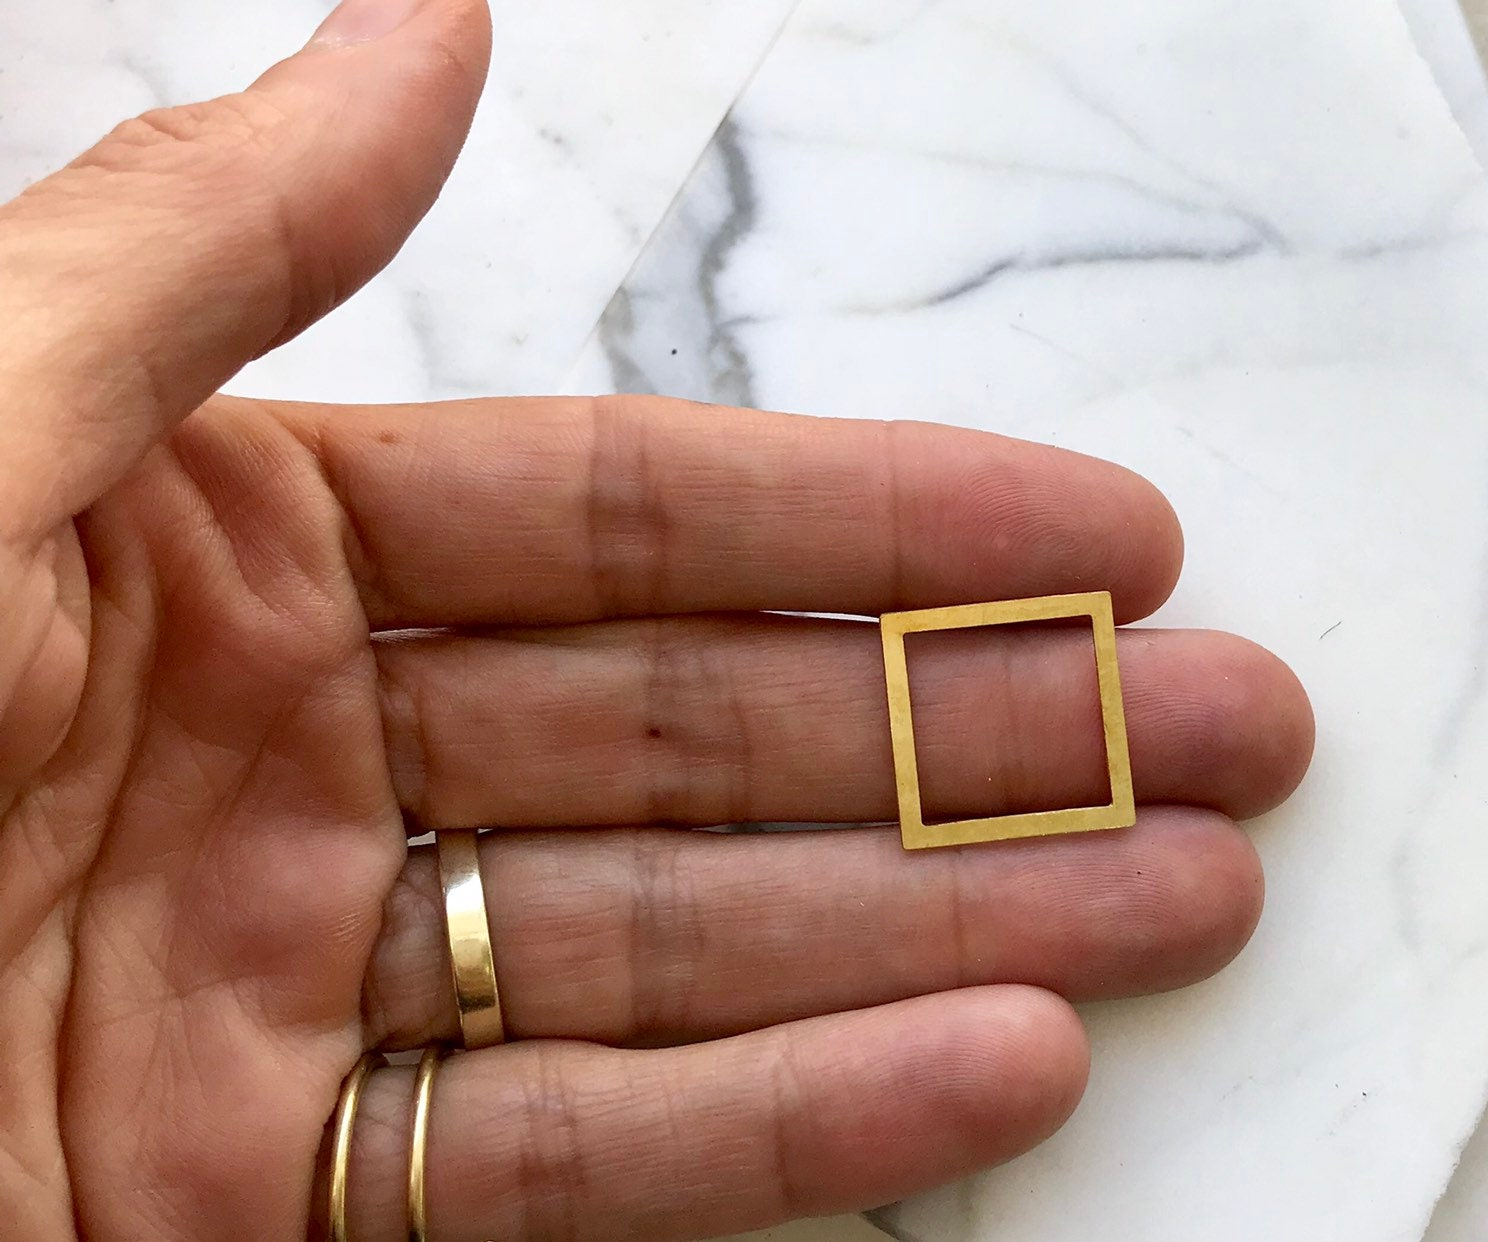 Laser Cut Charms Rose Gold Triangle Charm 3 Pcs Triangle Frame Charms Triangle Connector Rose Gold Triangle Pendant Geometric Findings